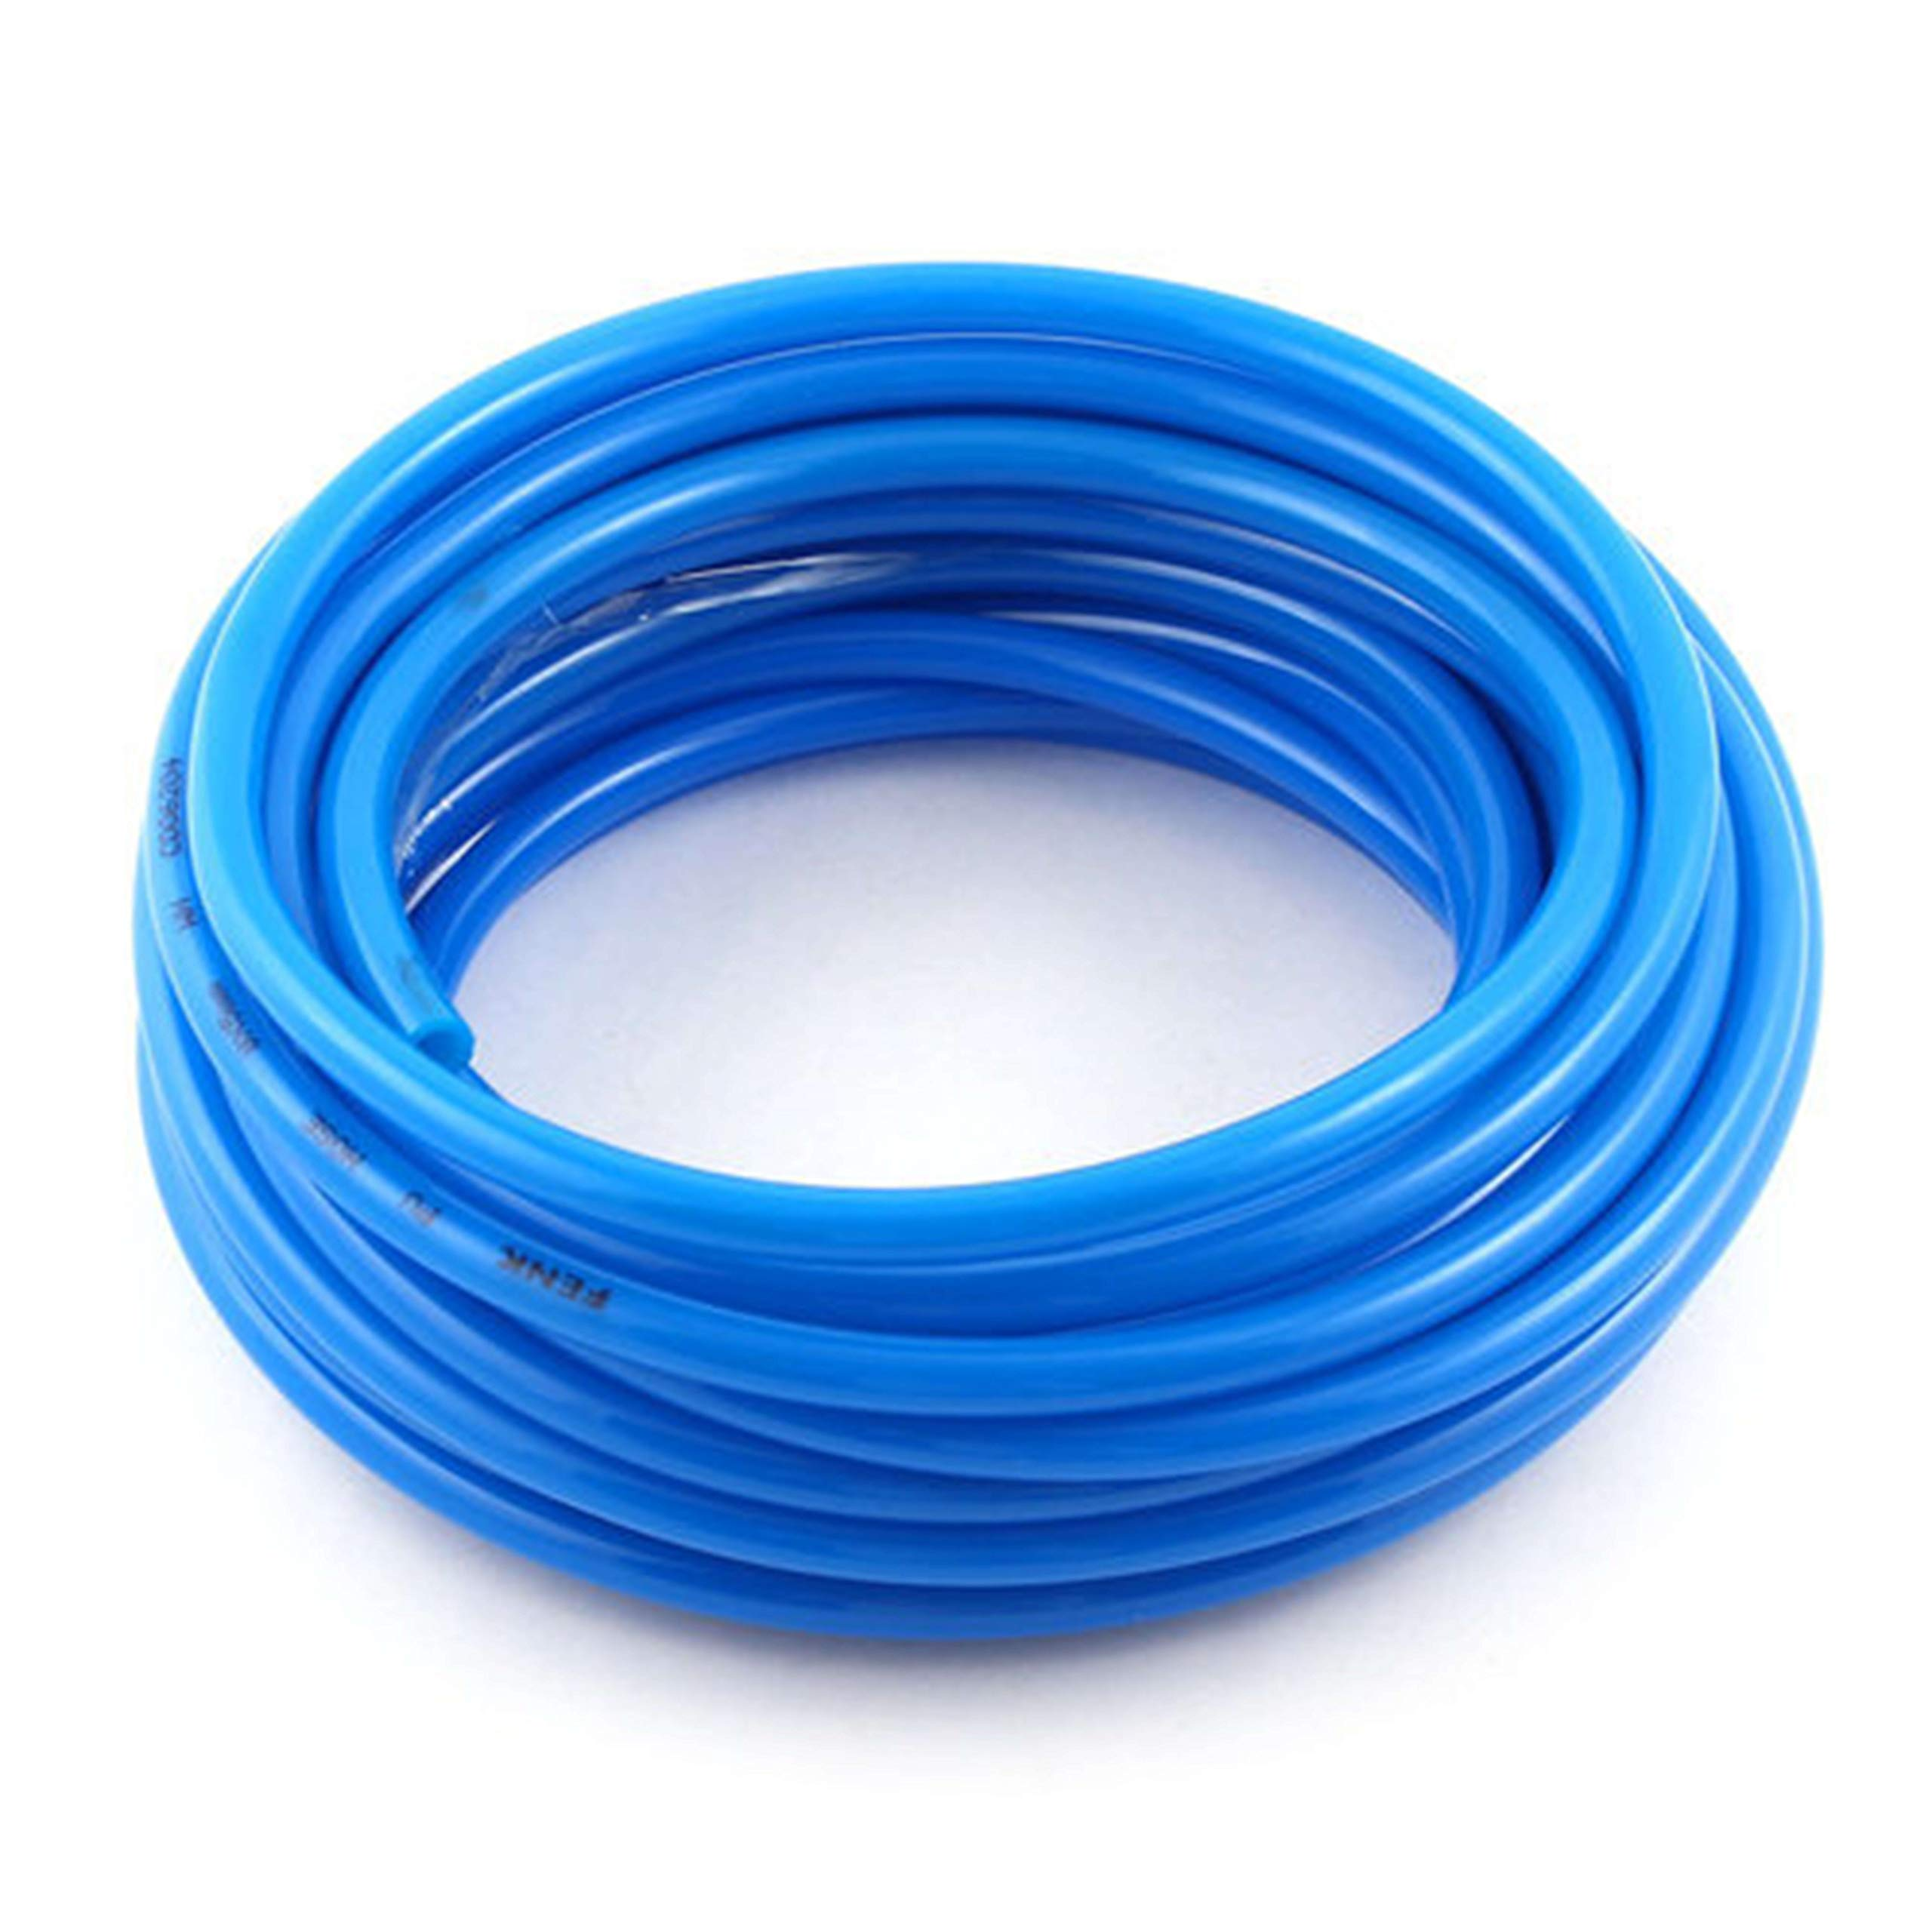 Utah Pneumatic 8mm Od 5mm Id10 Meters PU Air Tubing Pipe Hose Nylon Air Hose For Air Line Tubing Or Fluid Transfer pneumatic tubing (Nylon Tube 8mm)